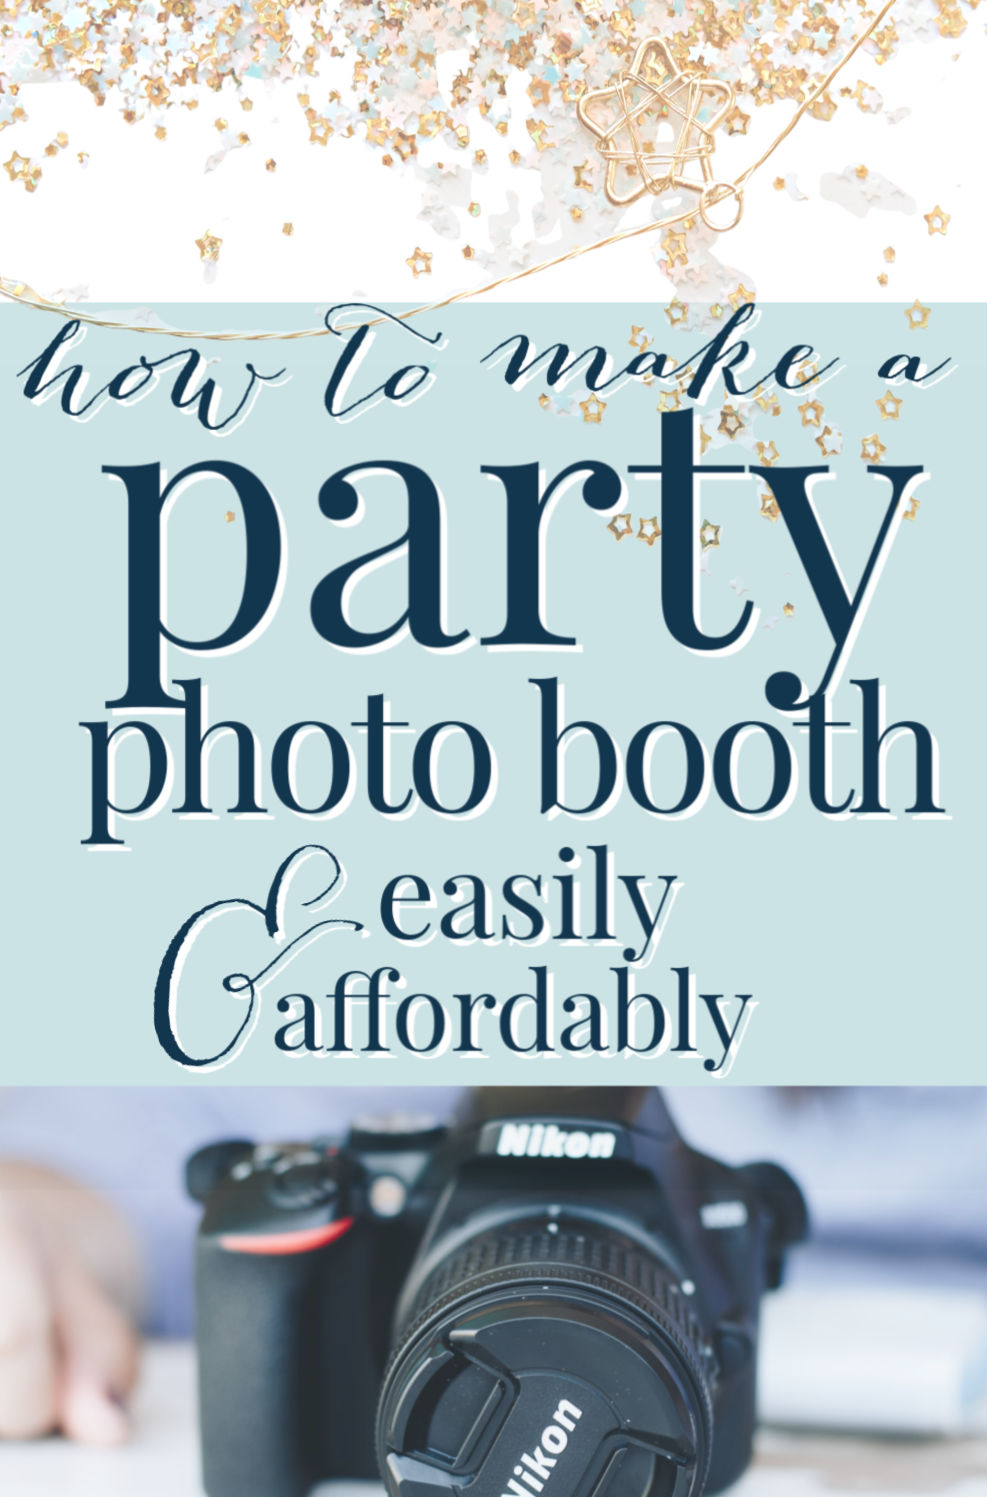 How To Make A Photo Booth Cheaply Easily A Pop Of Pretty